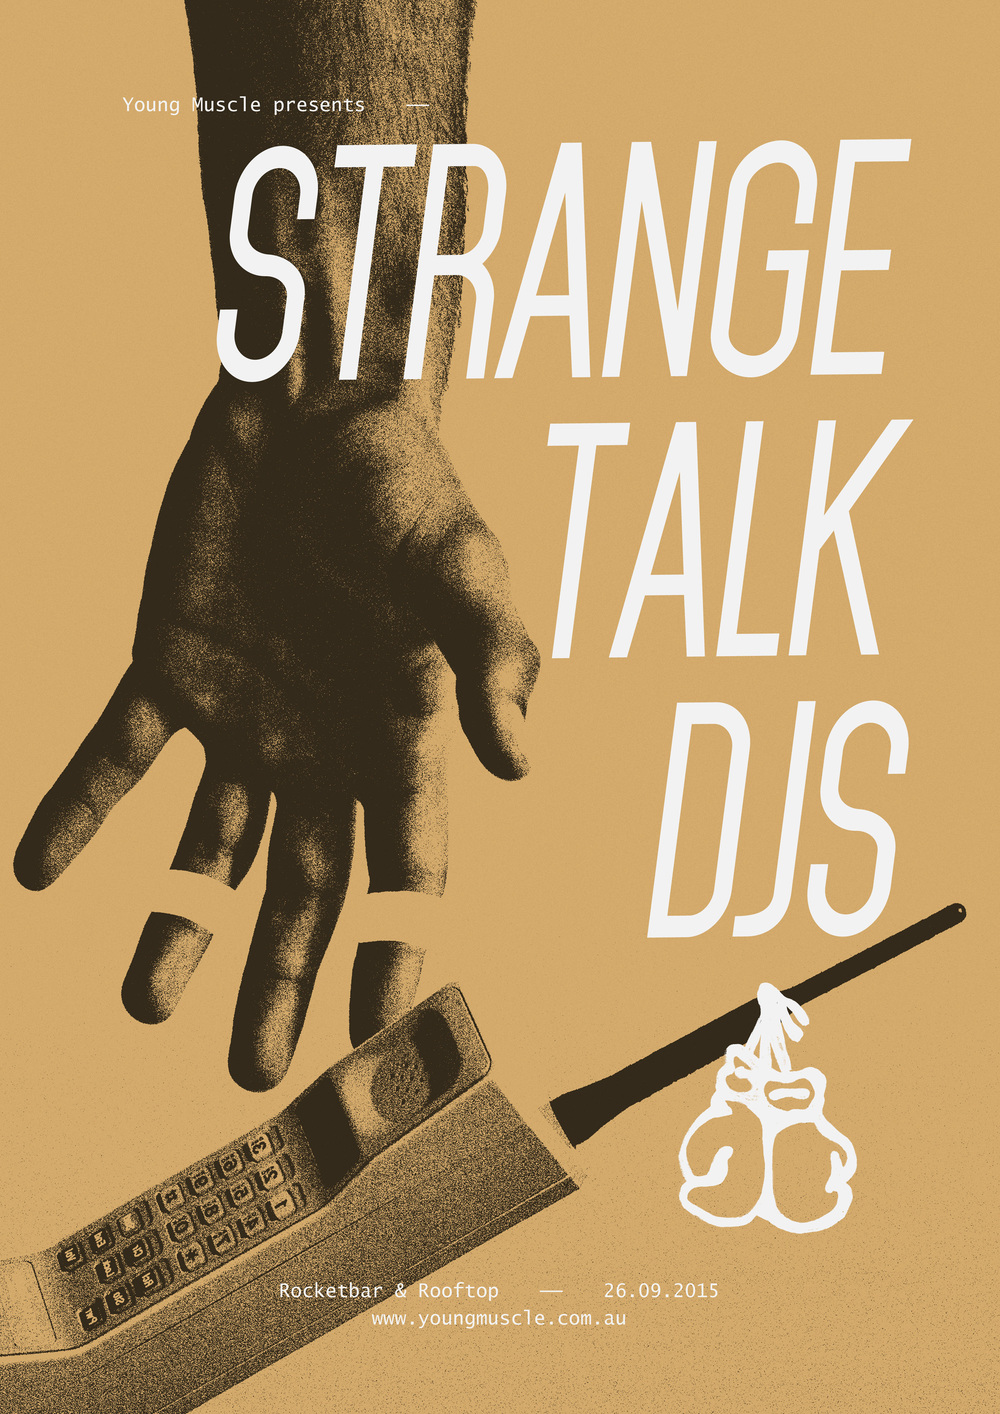 YM ROCKET STRANGE TALK DJS 26 SEPT WEB.jpg